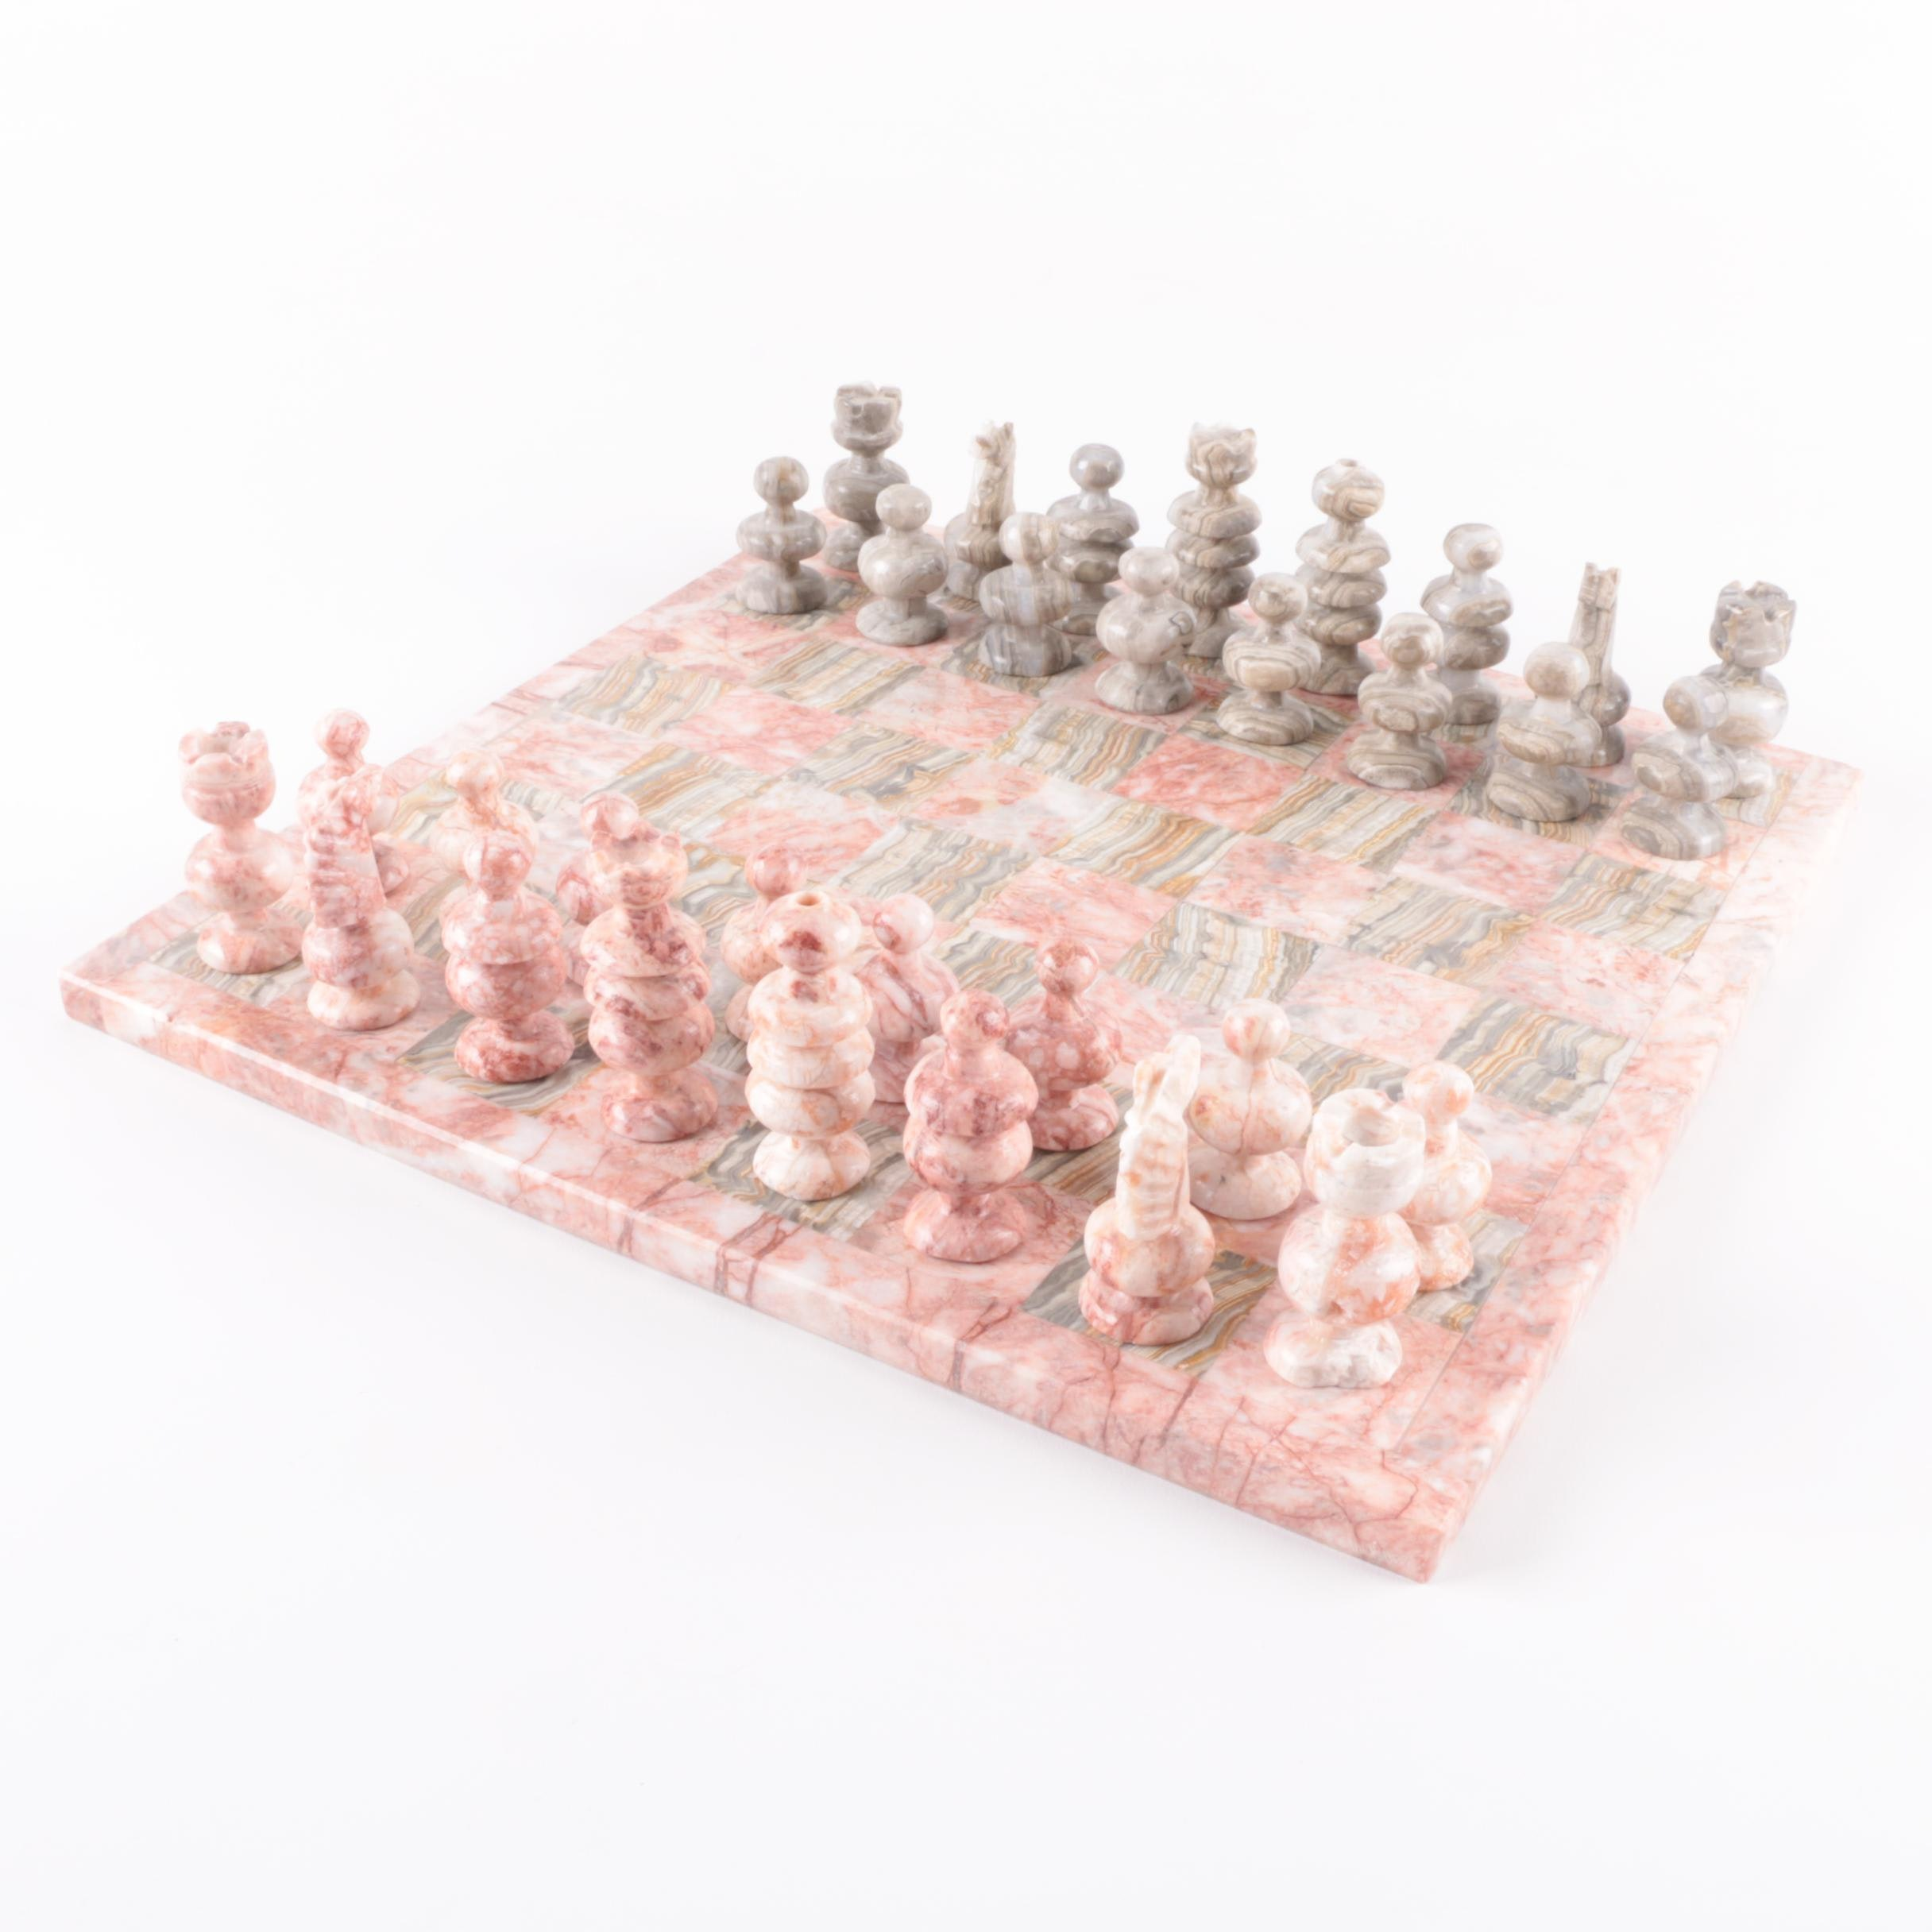 Marble and Banded Calcite Chess Set